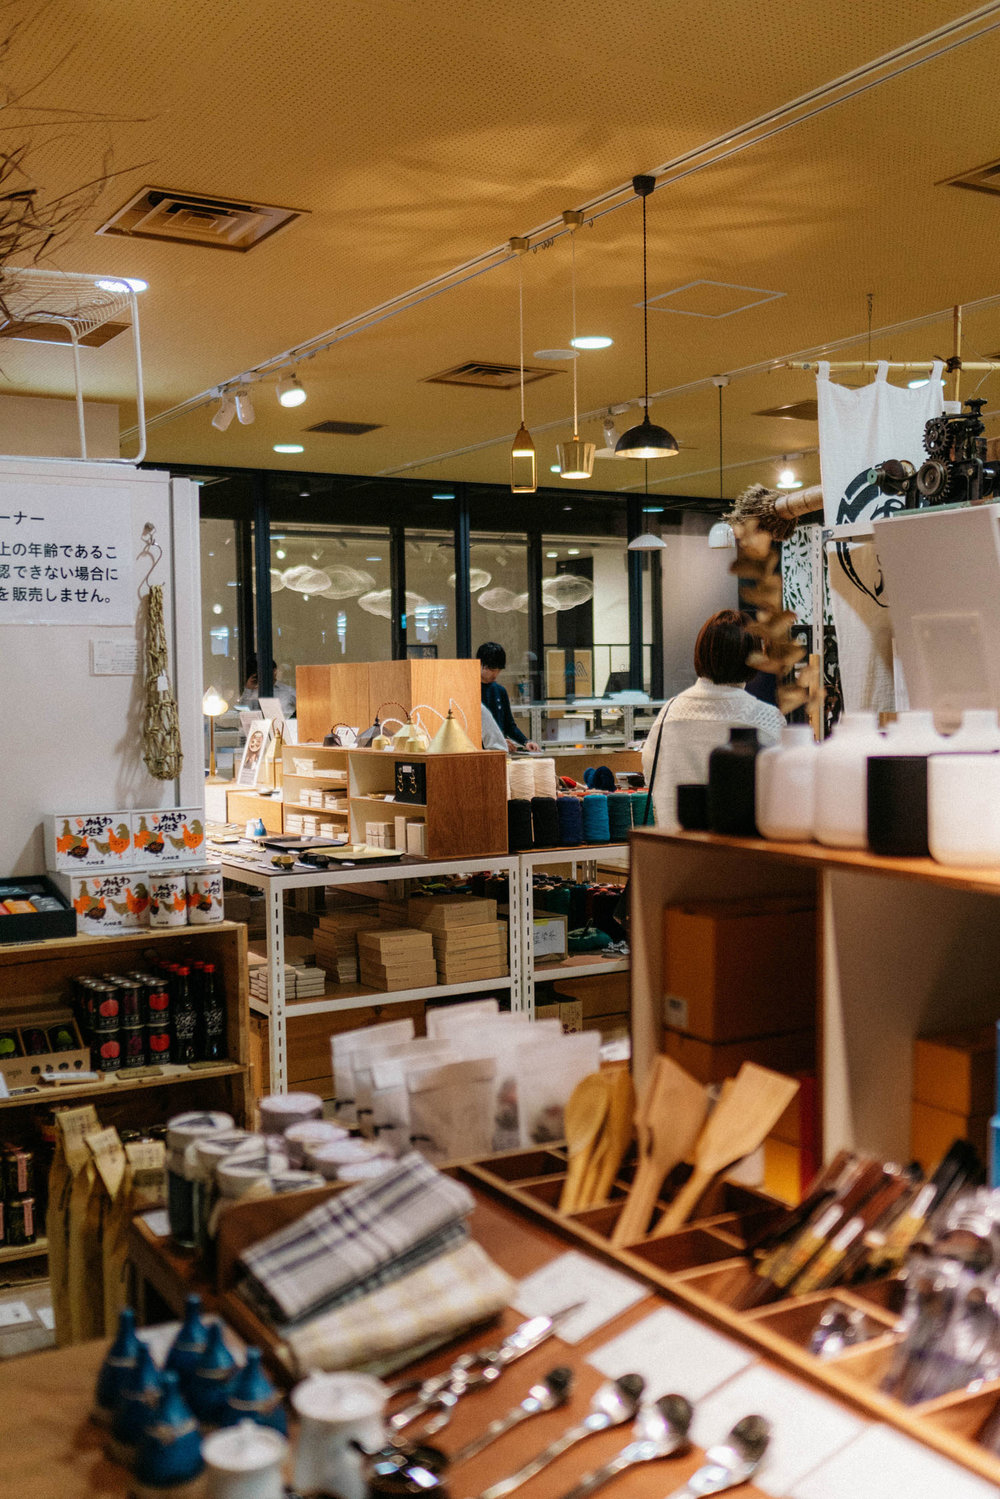 D&DEPARTMENT PROJECT  – store created by the design travel magazine; really nicely curated local goods